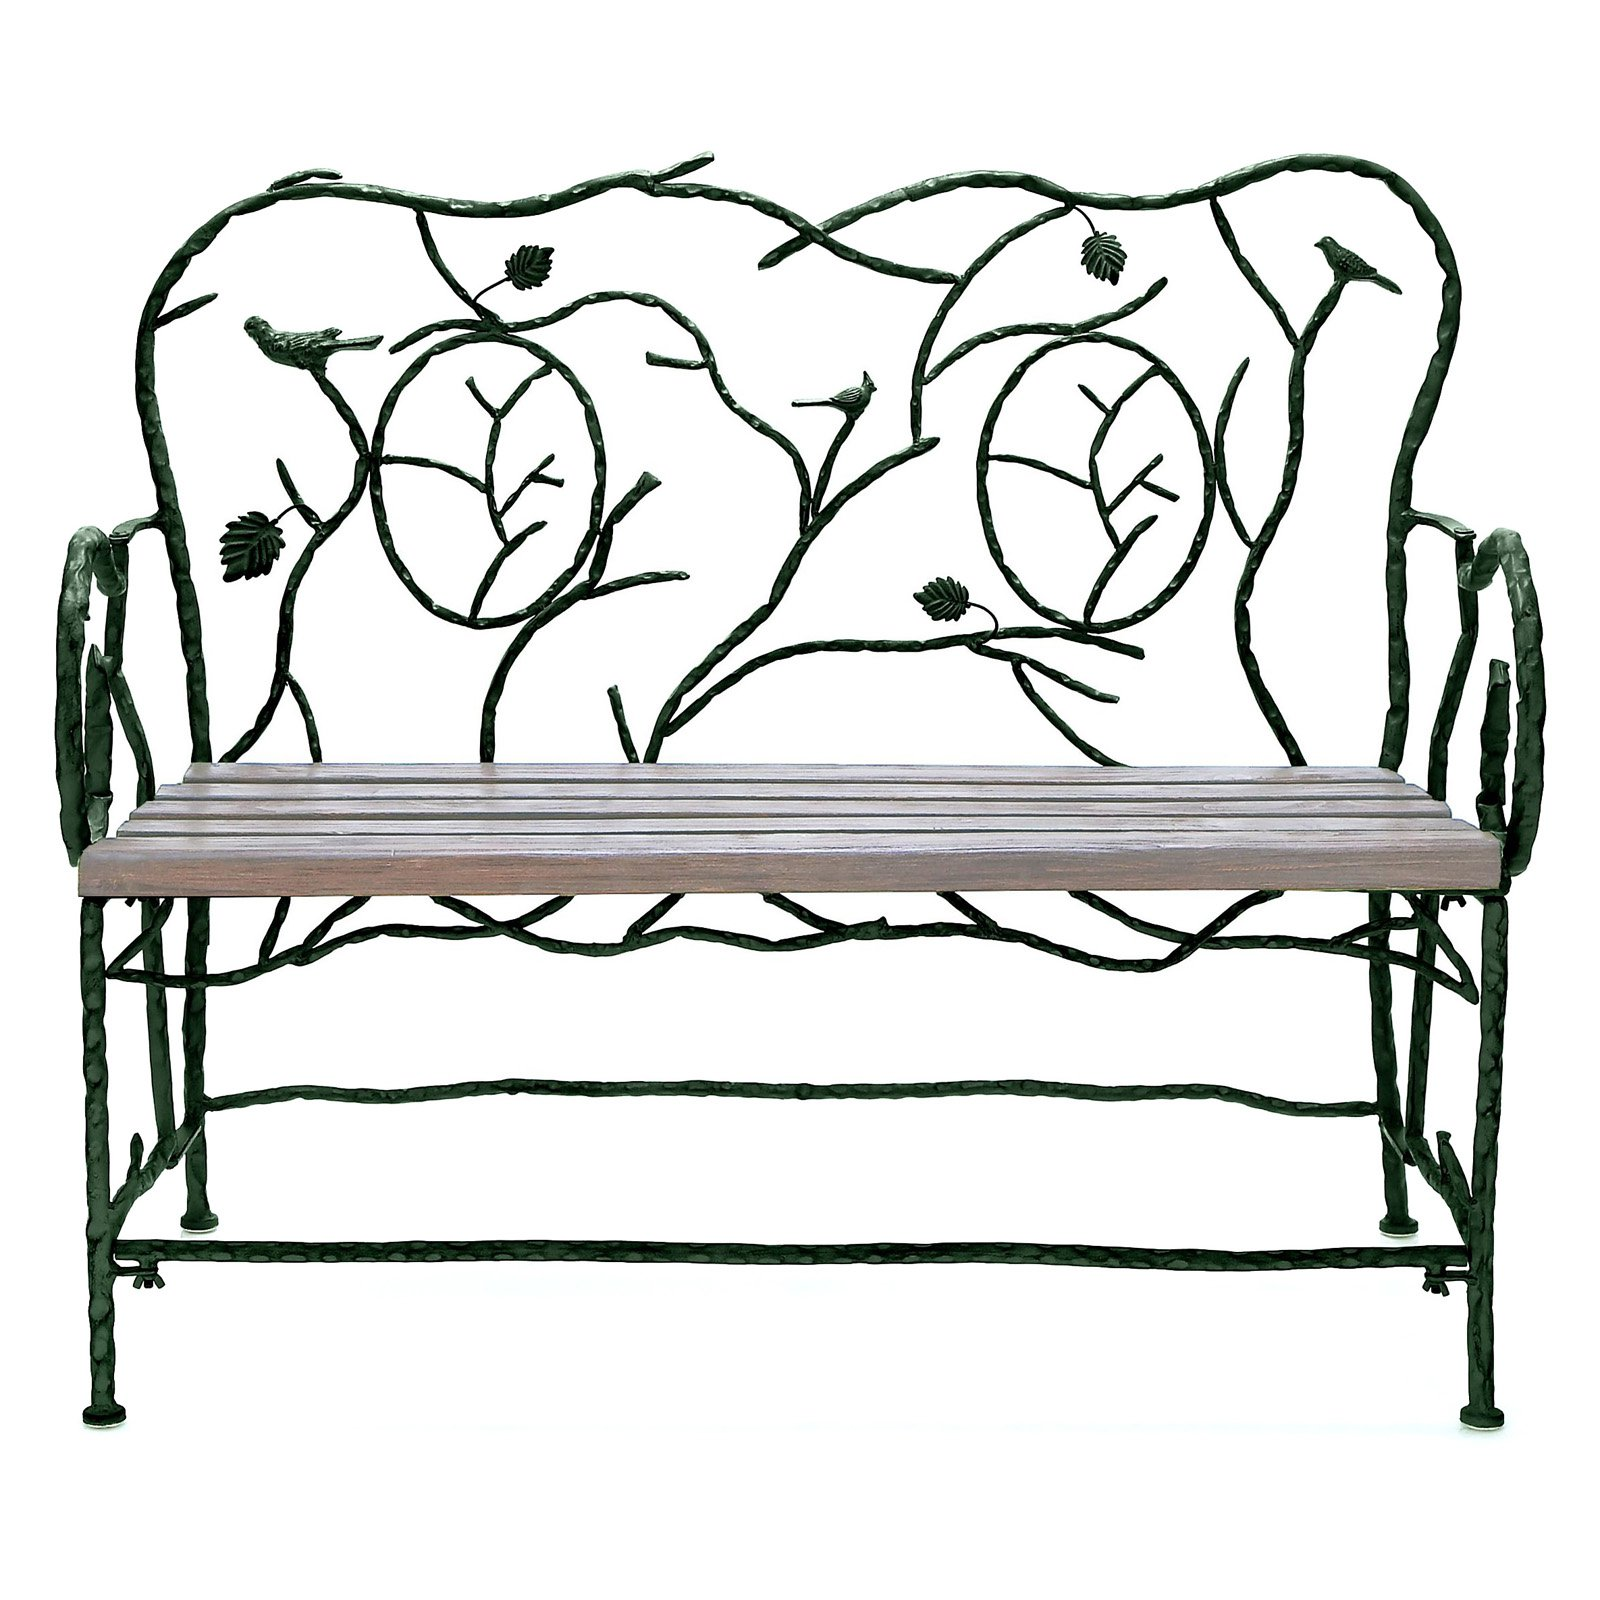 Decmode Metal and Wood Outdoor Bench, Multi Color